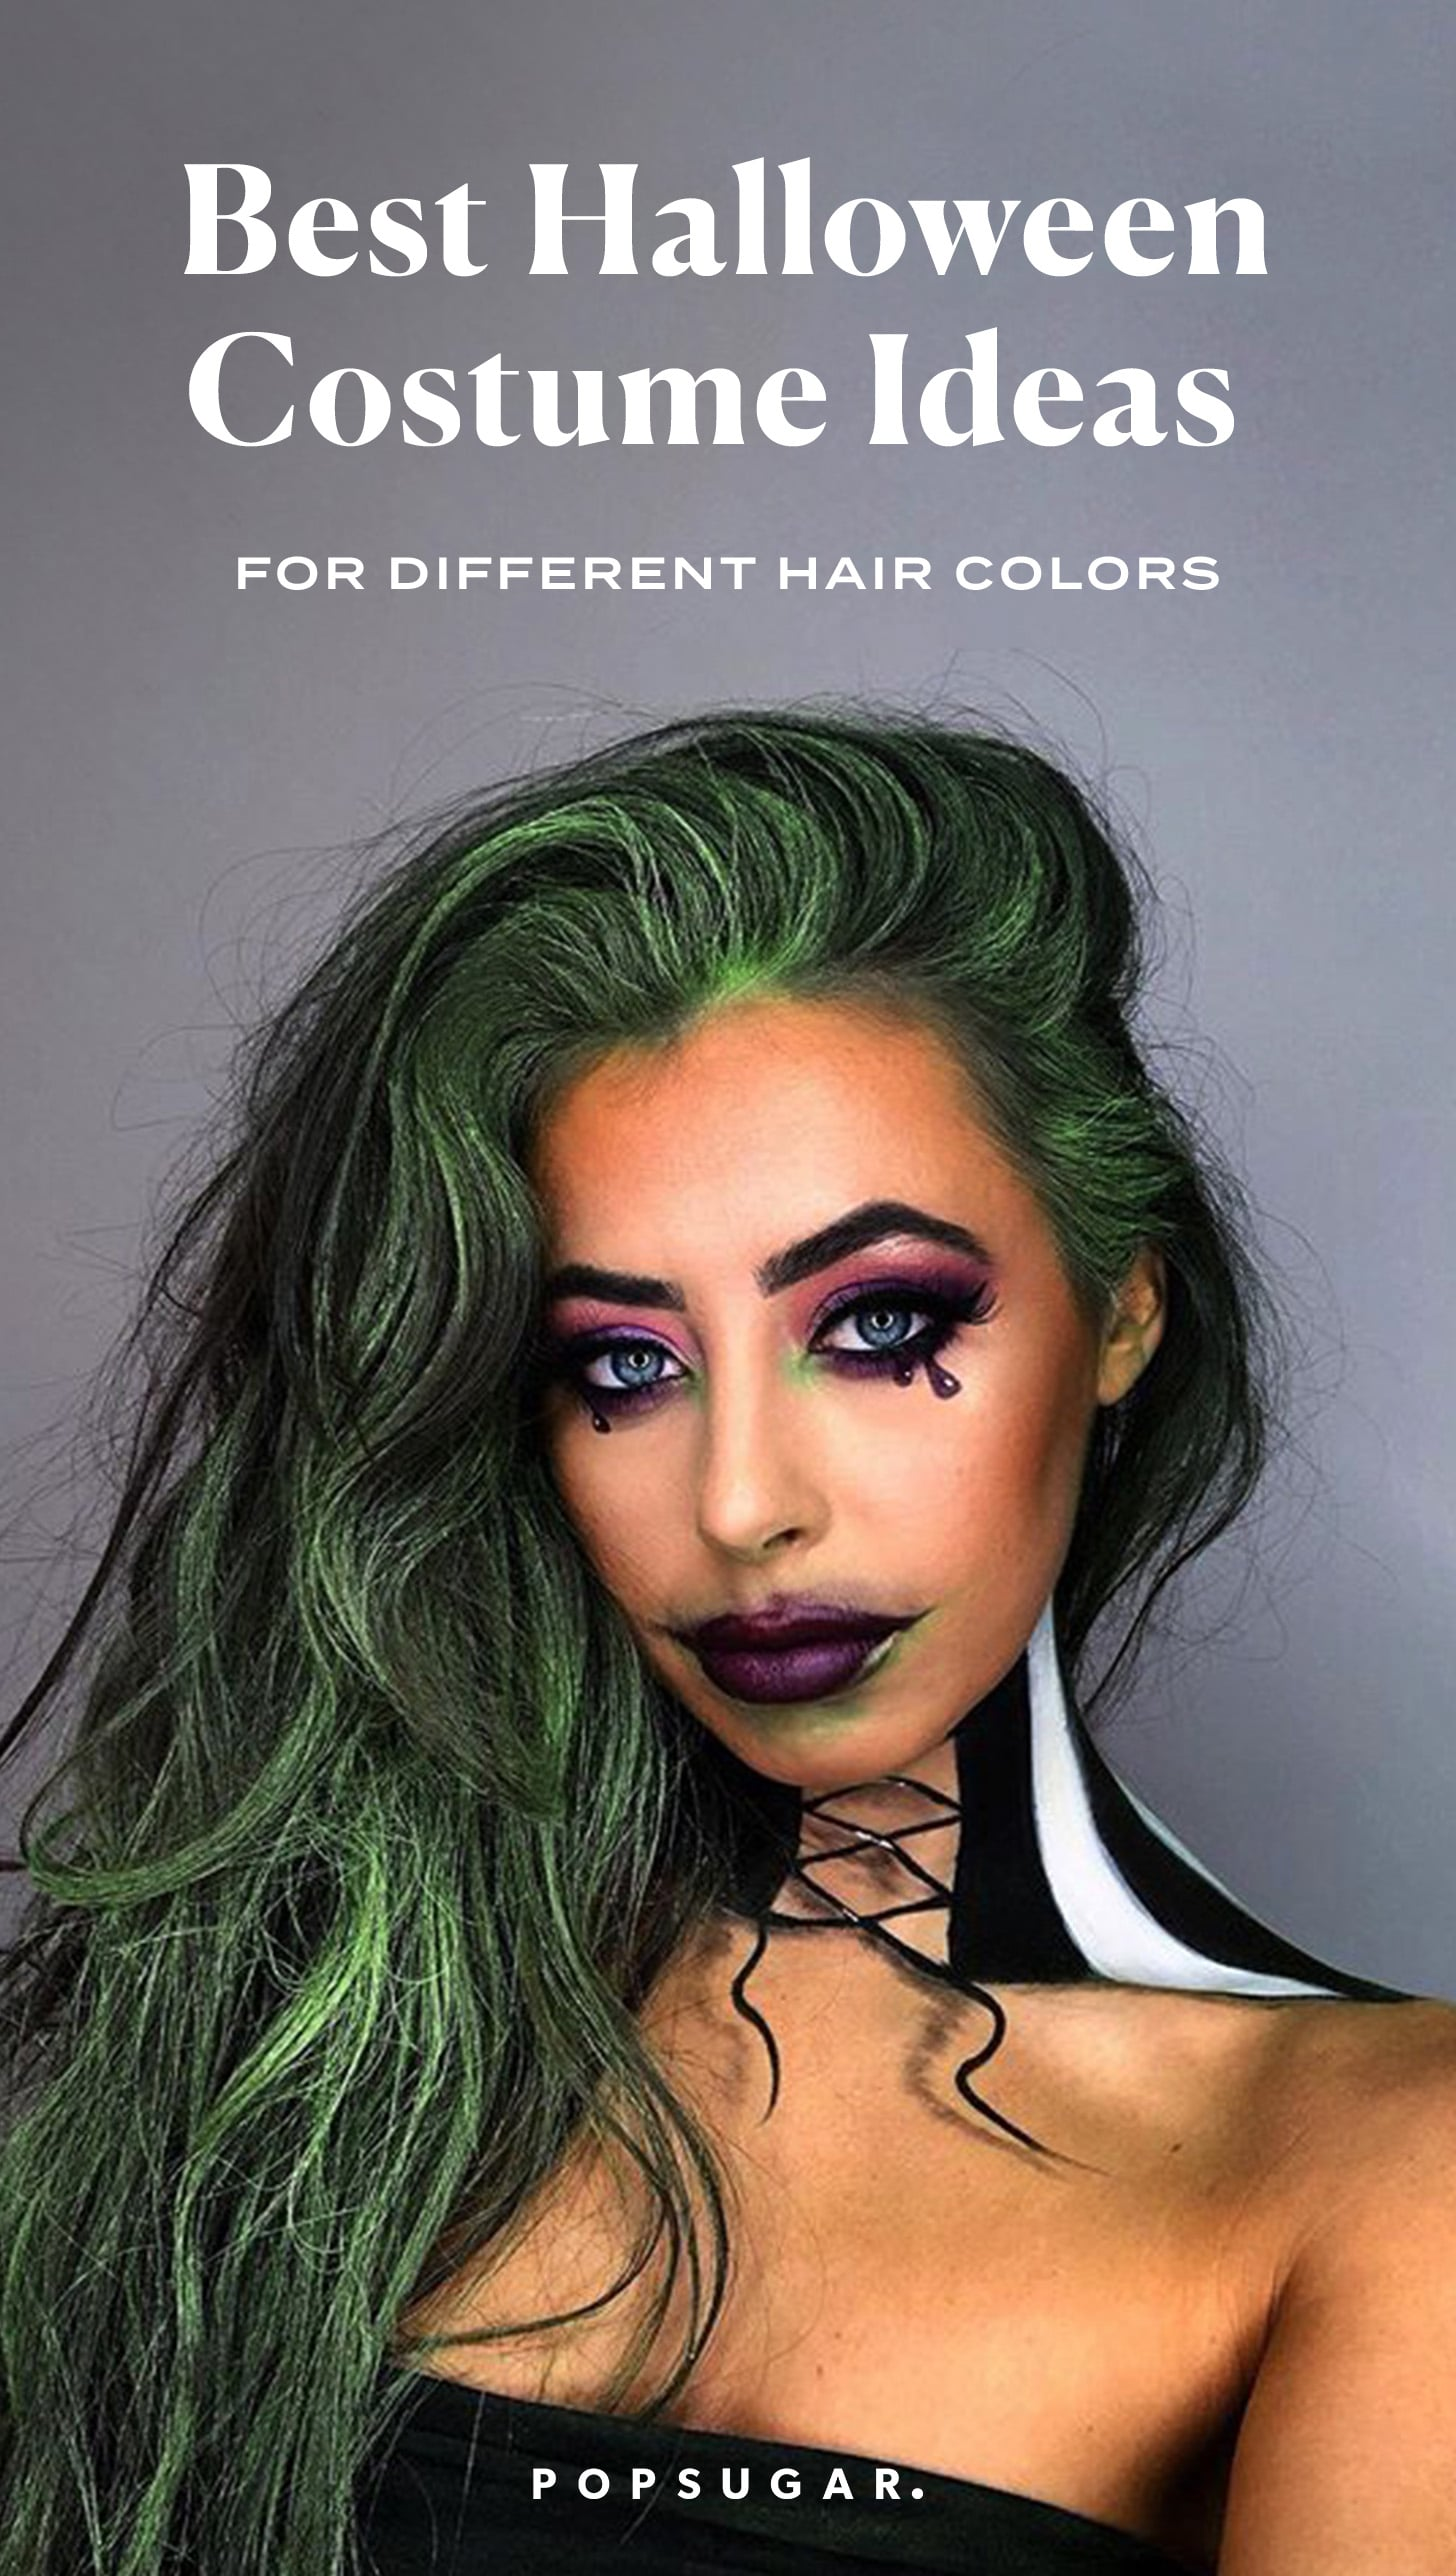 The Best Halloween Costume Ideas For Different Hair Colors Popsugar Beauty